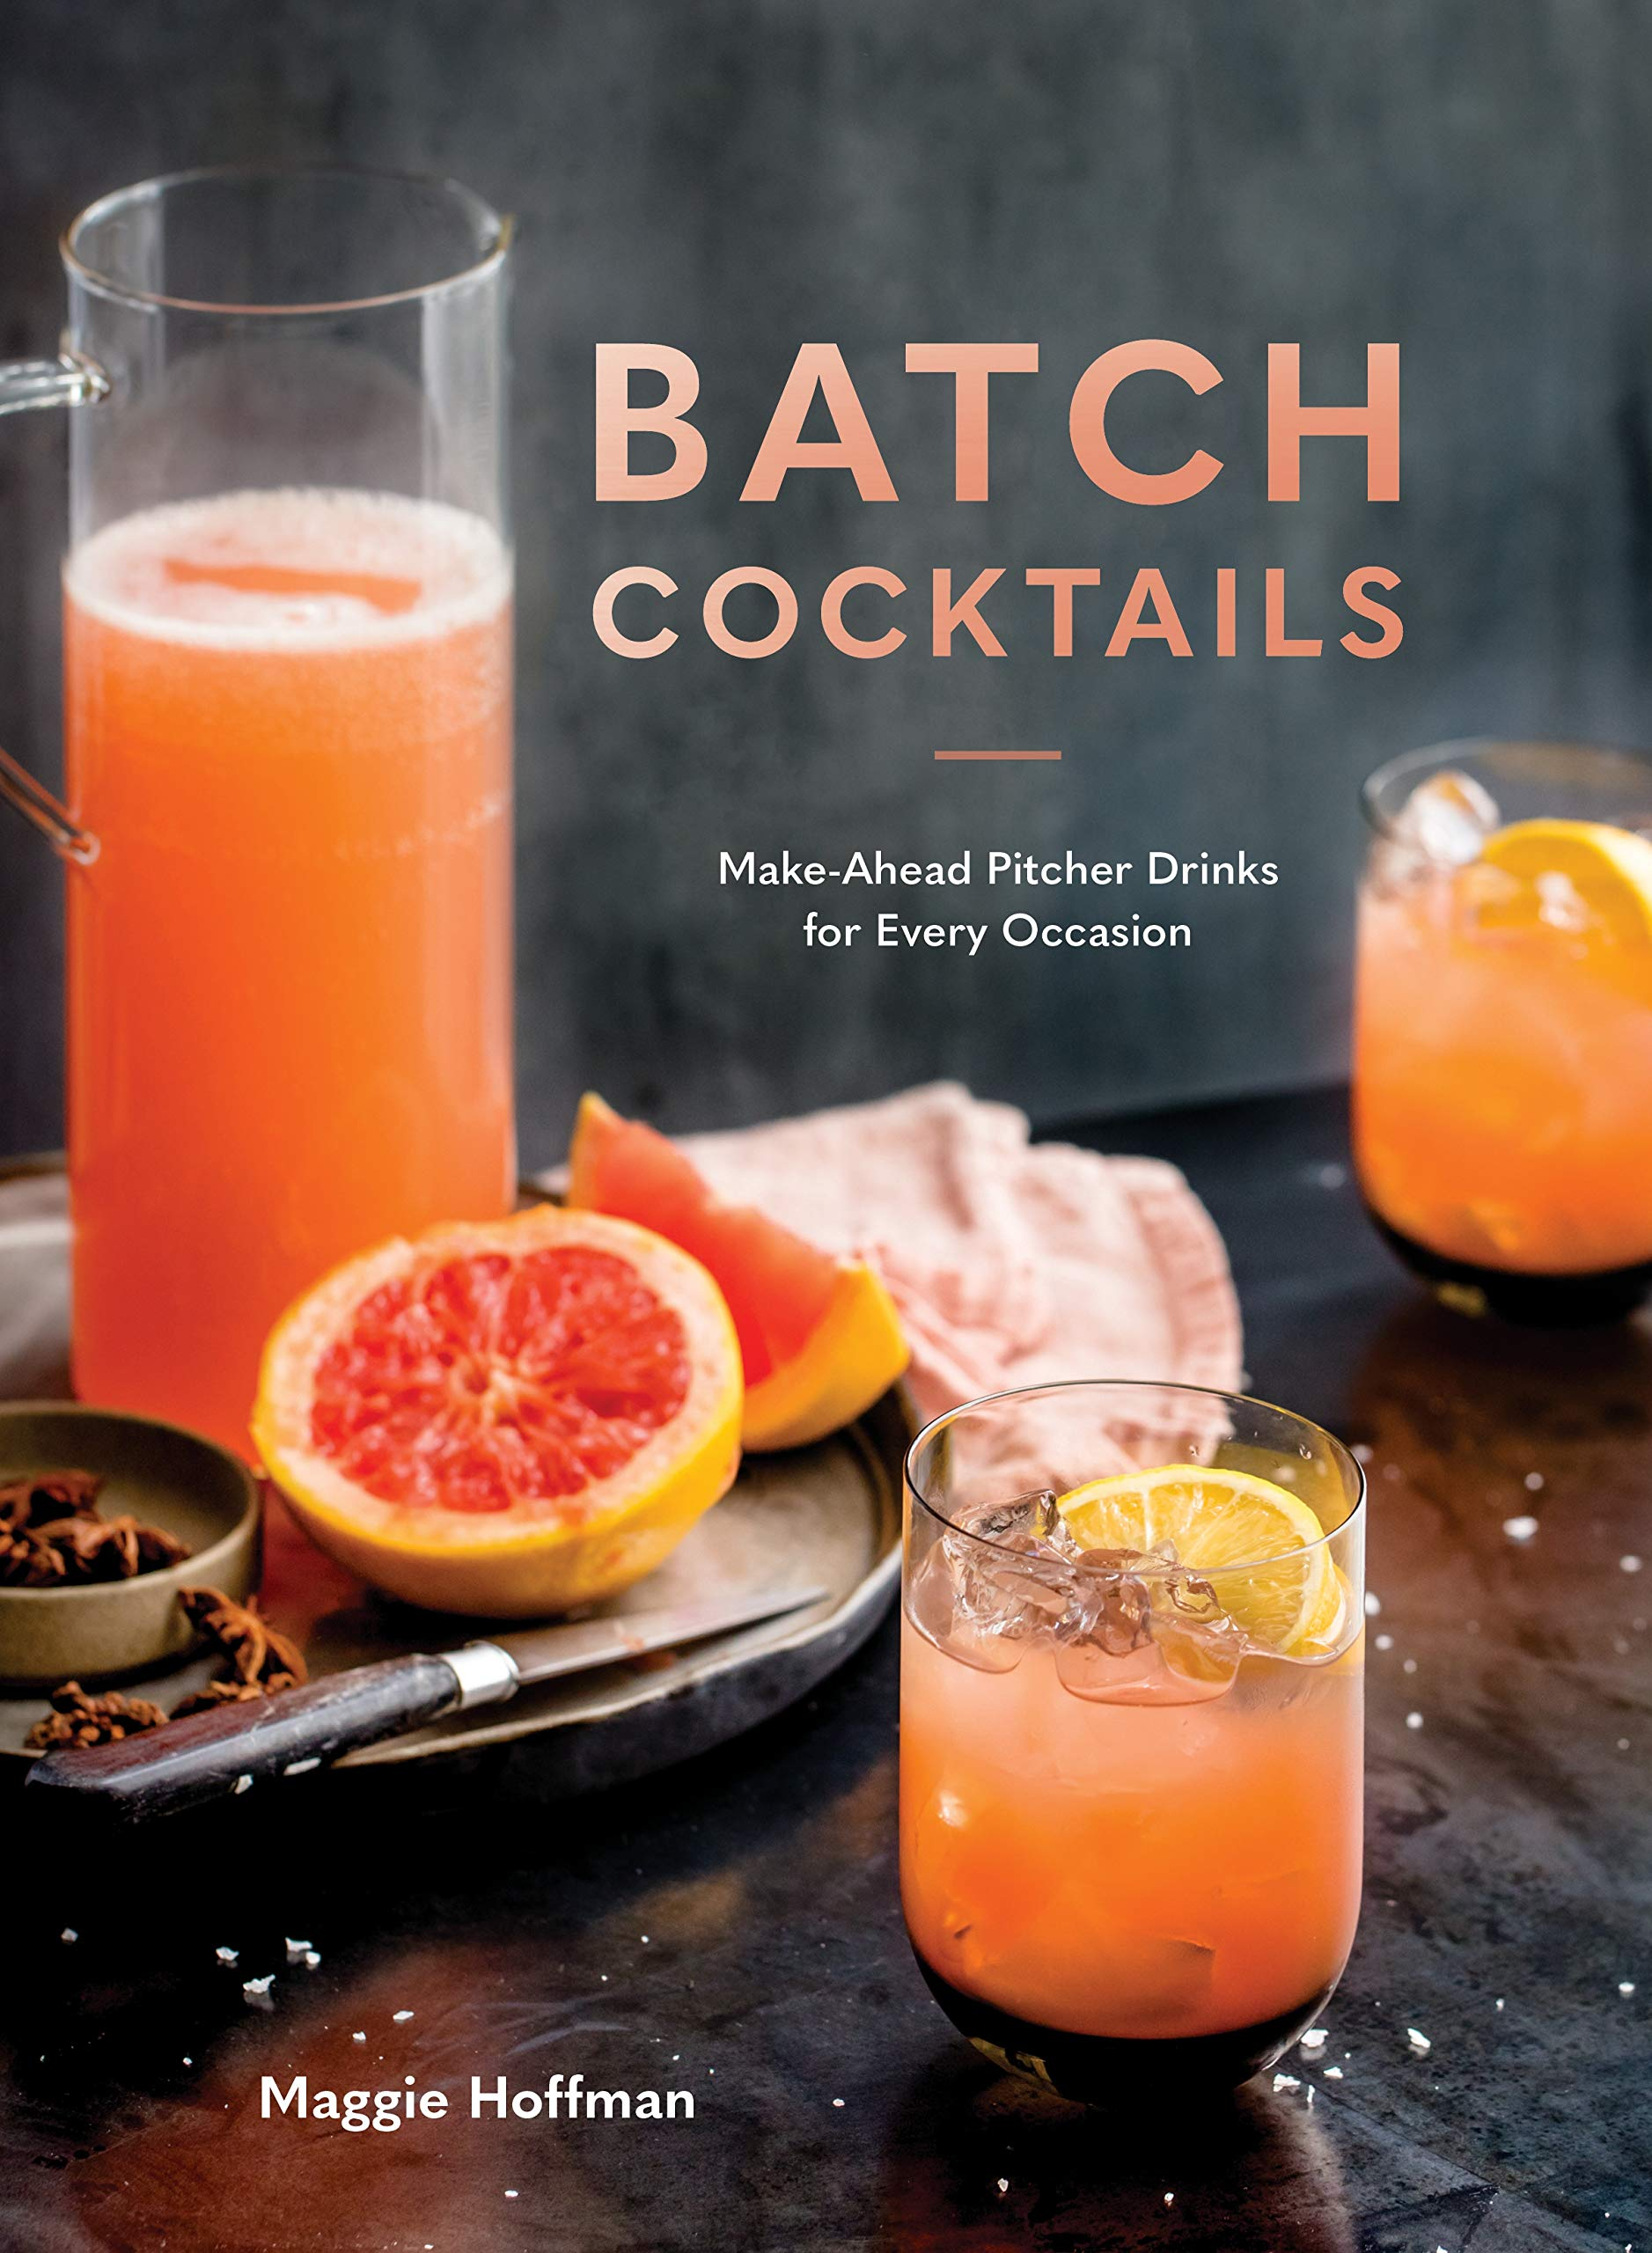 Image OfBatch Cocktails: Make-Ahead Pitcher Drinks For Every Occasion